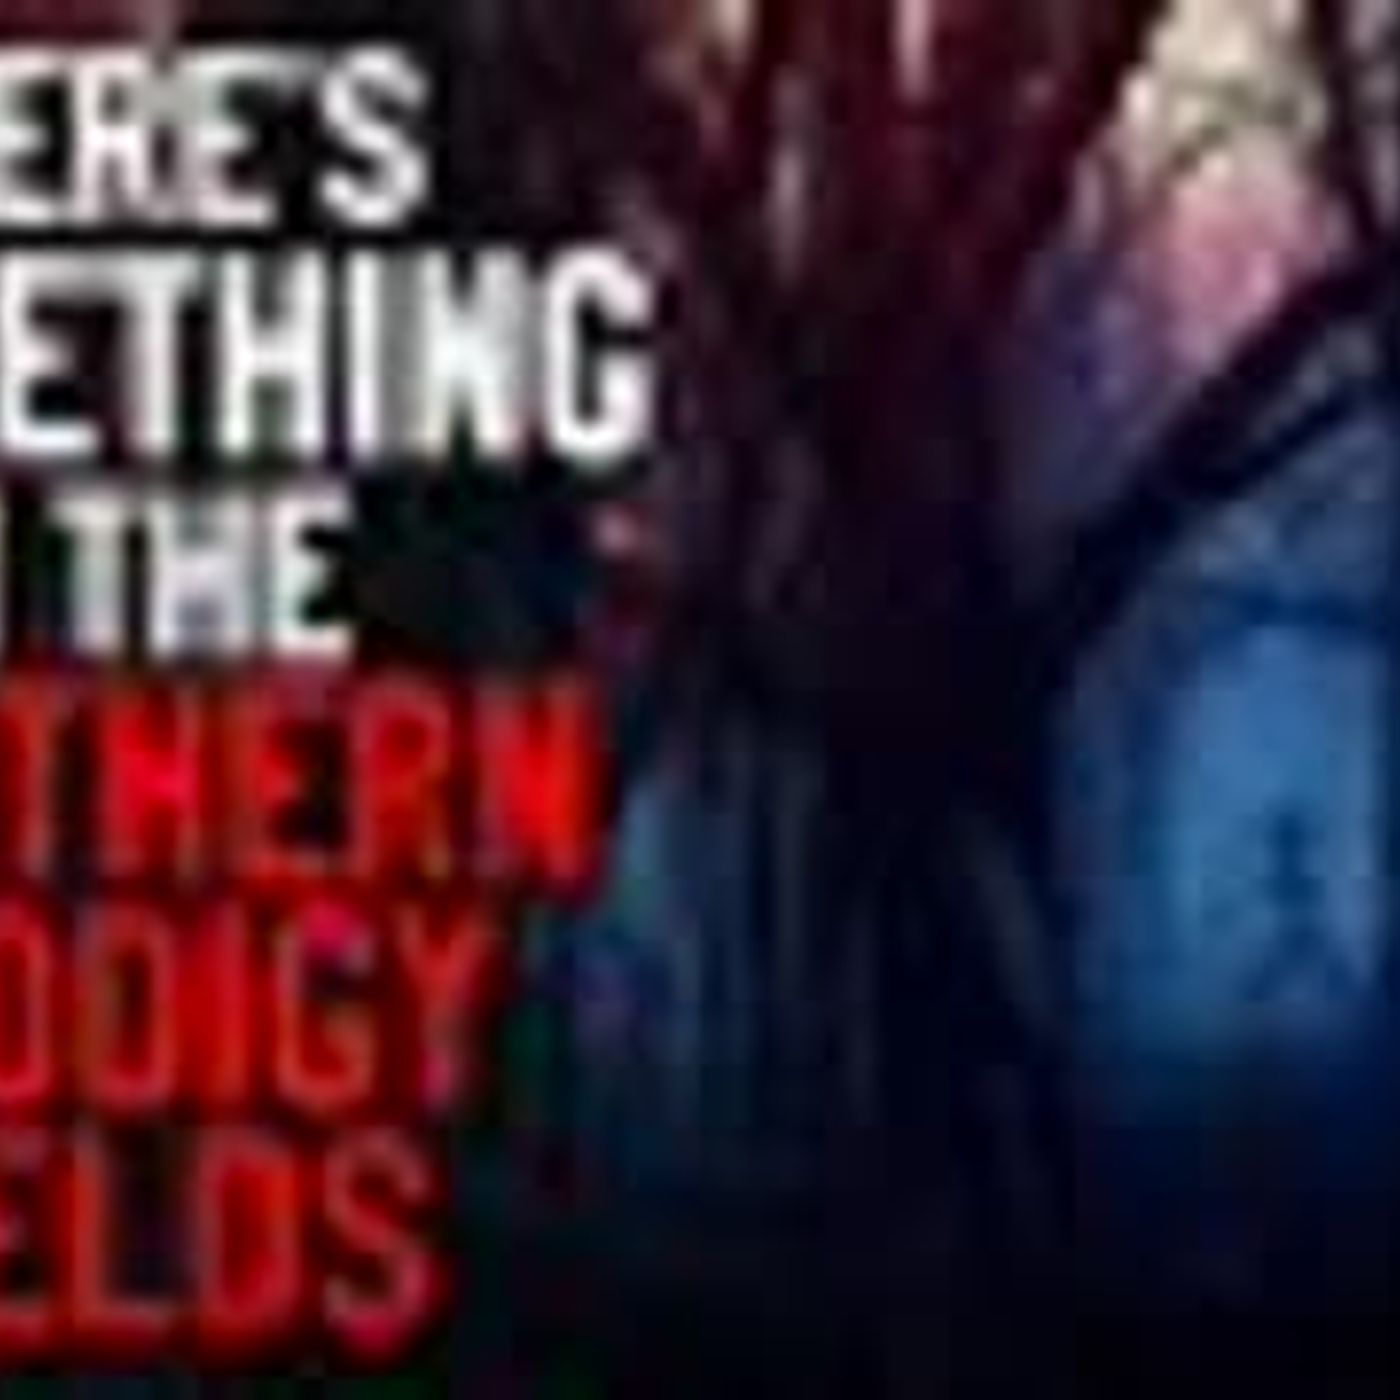 """There's Something in the Northern Prodigy Fields"" Creepypasta"